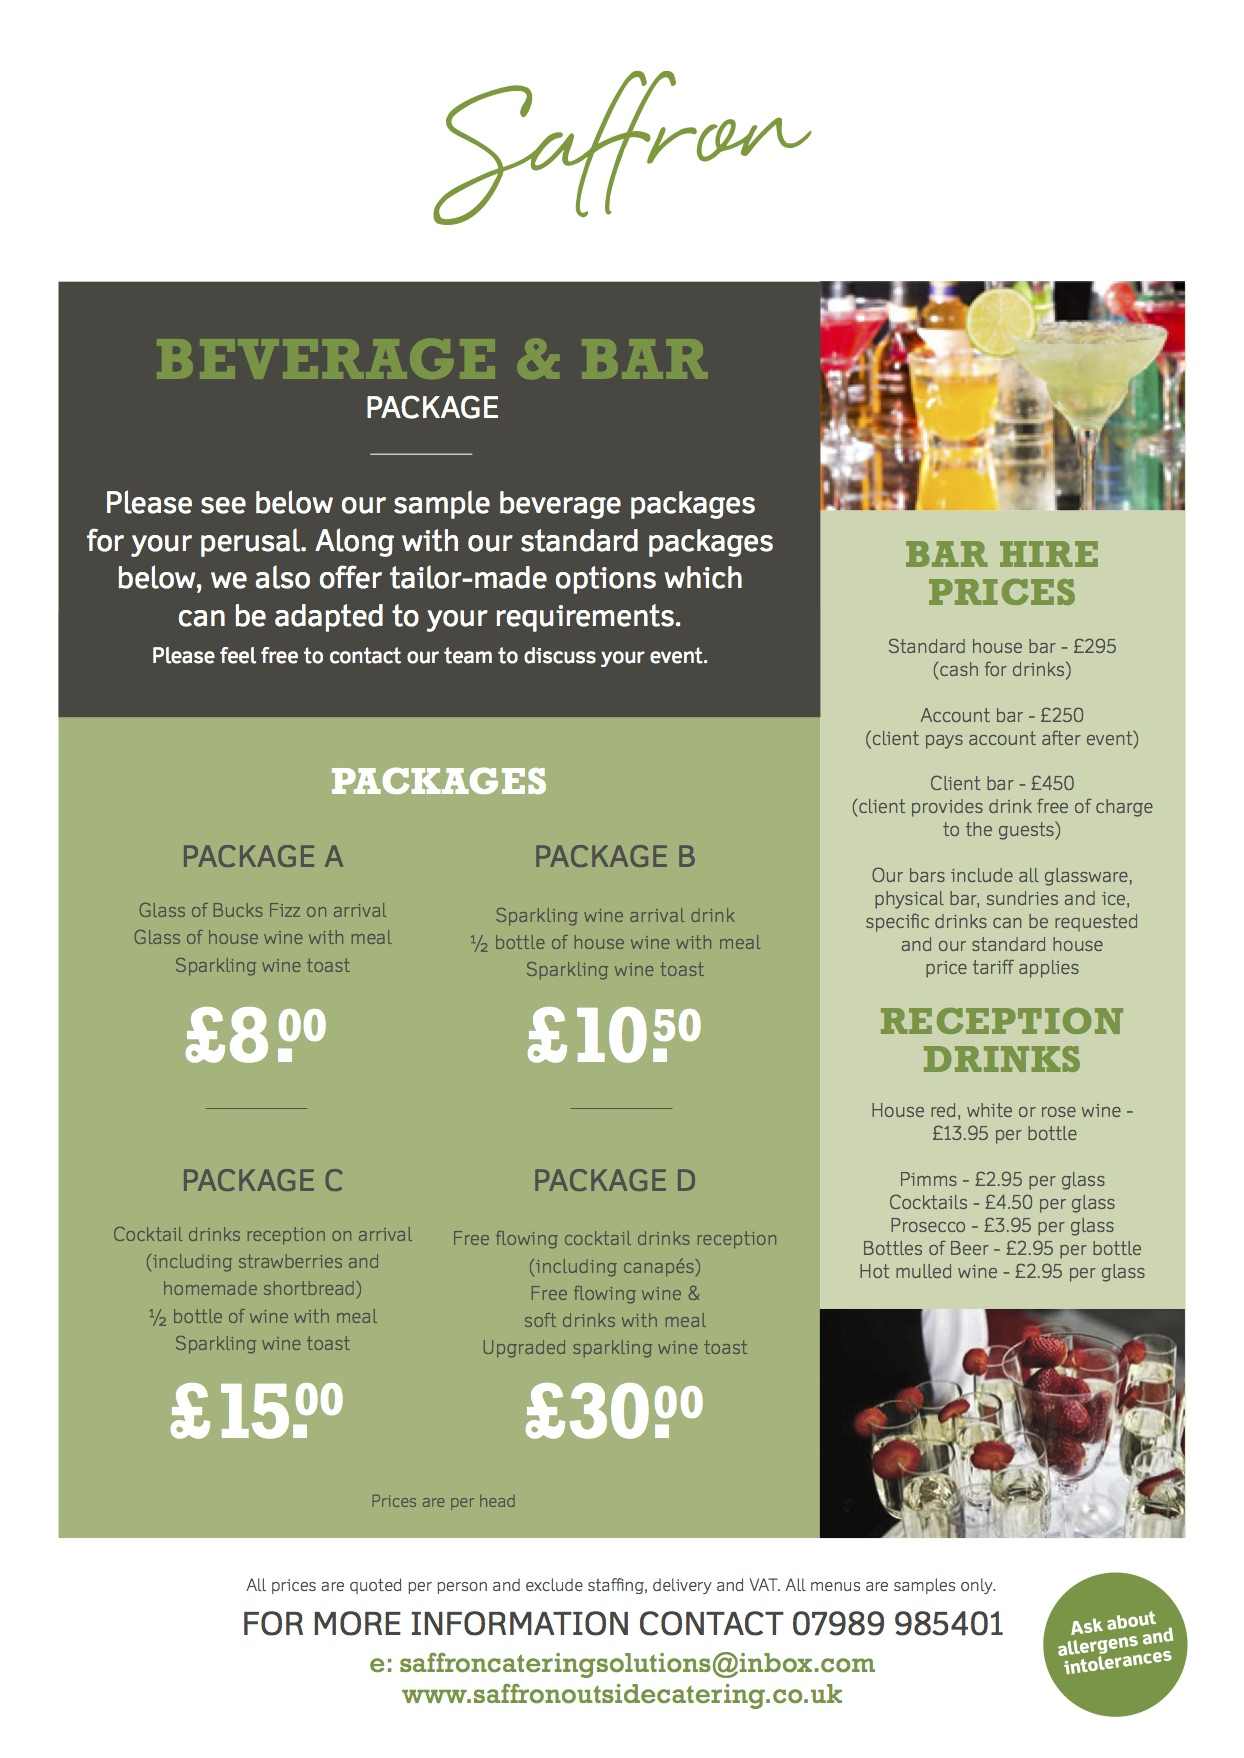 BEVERAGE AND BAR 1 - Beverage and Bar